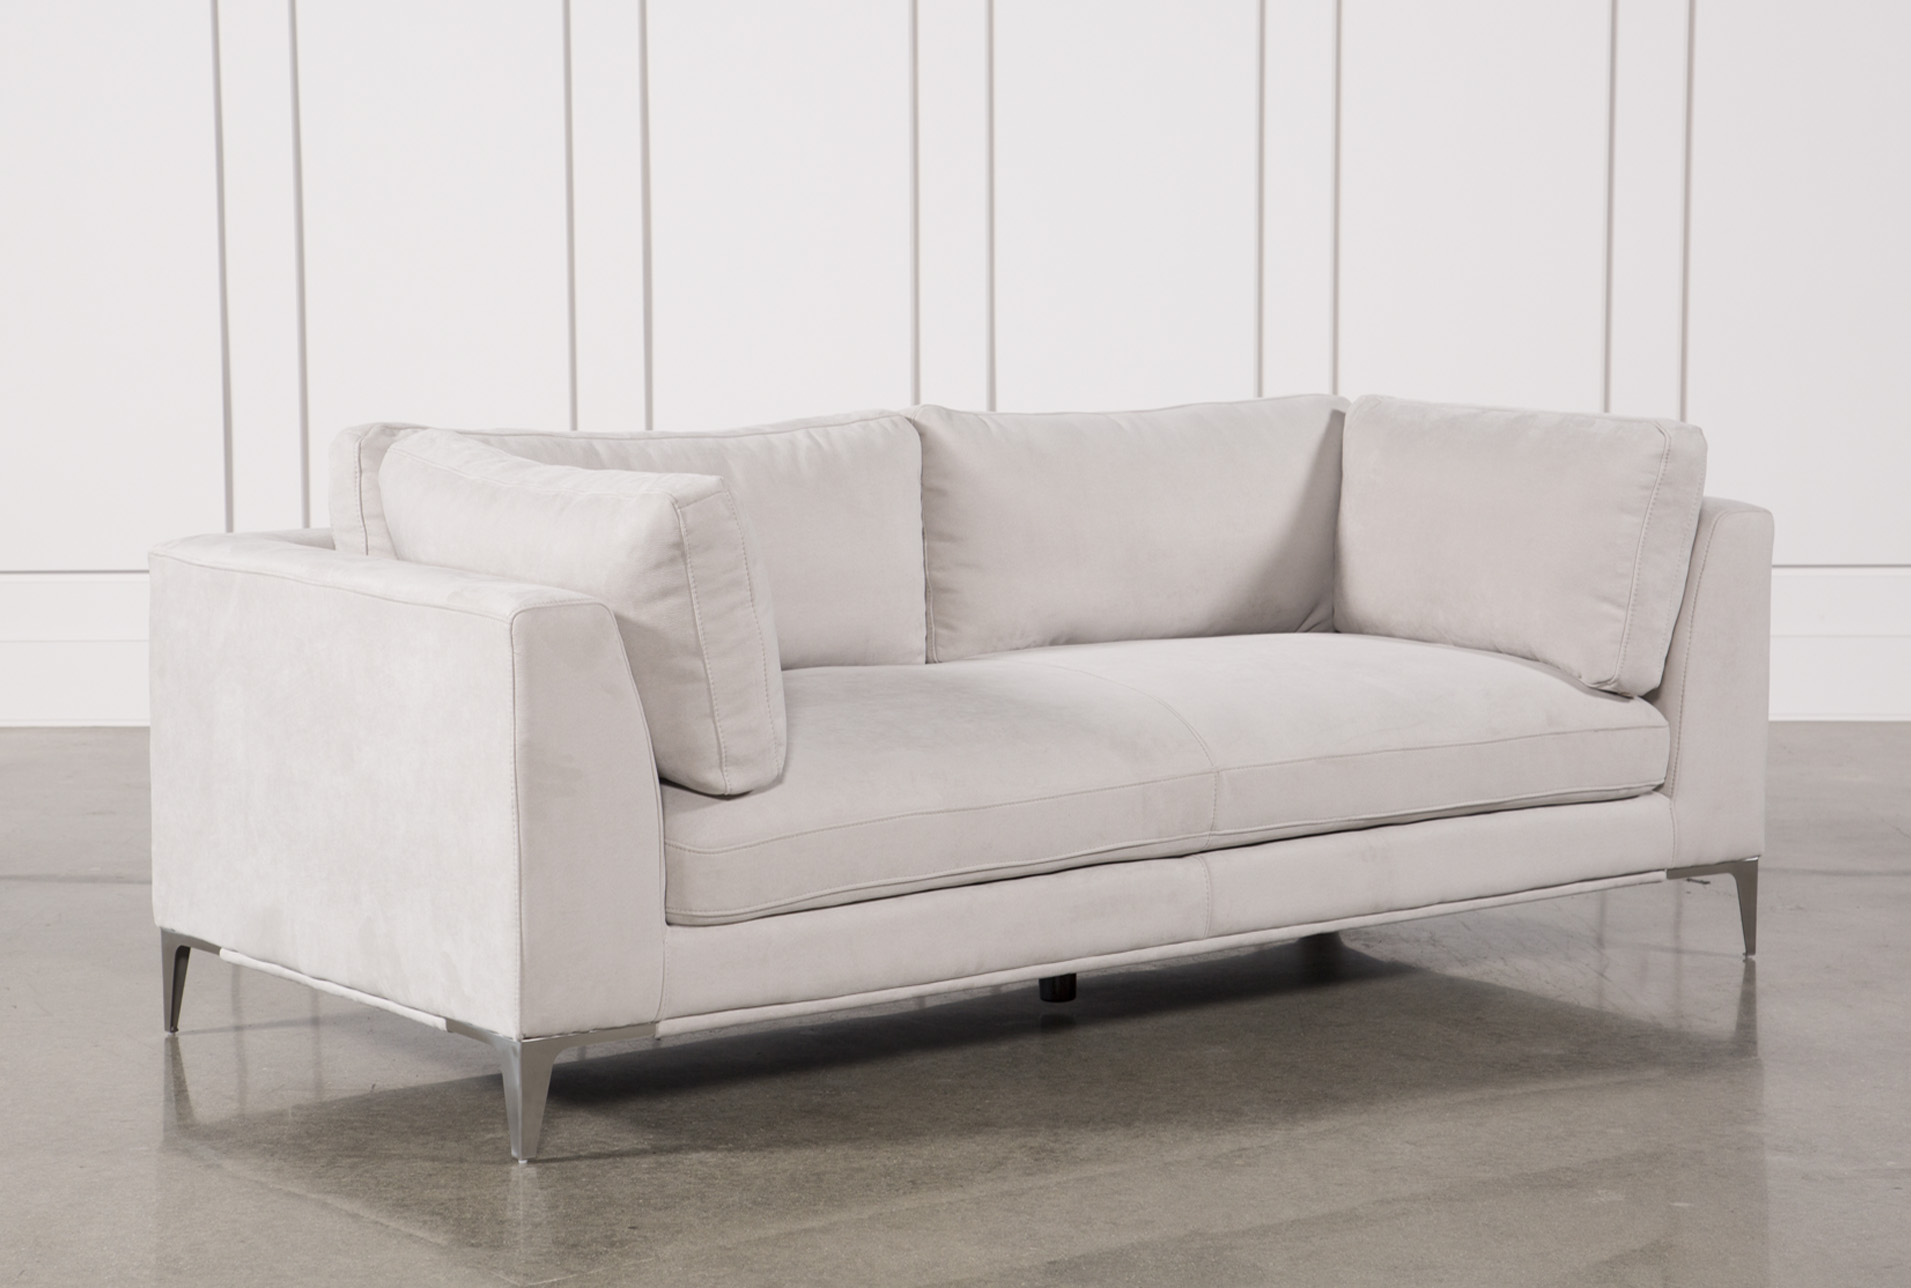 apollo light grey sofa w 2 pillows living spaces rh livingspaces com light grey sofa set light gray sofa sectional